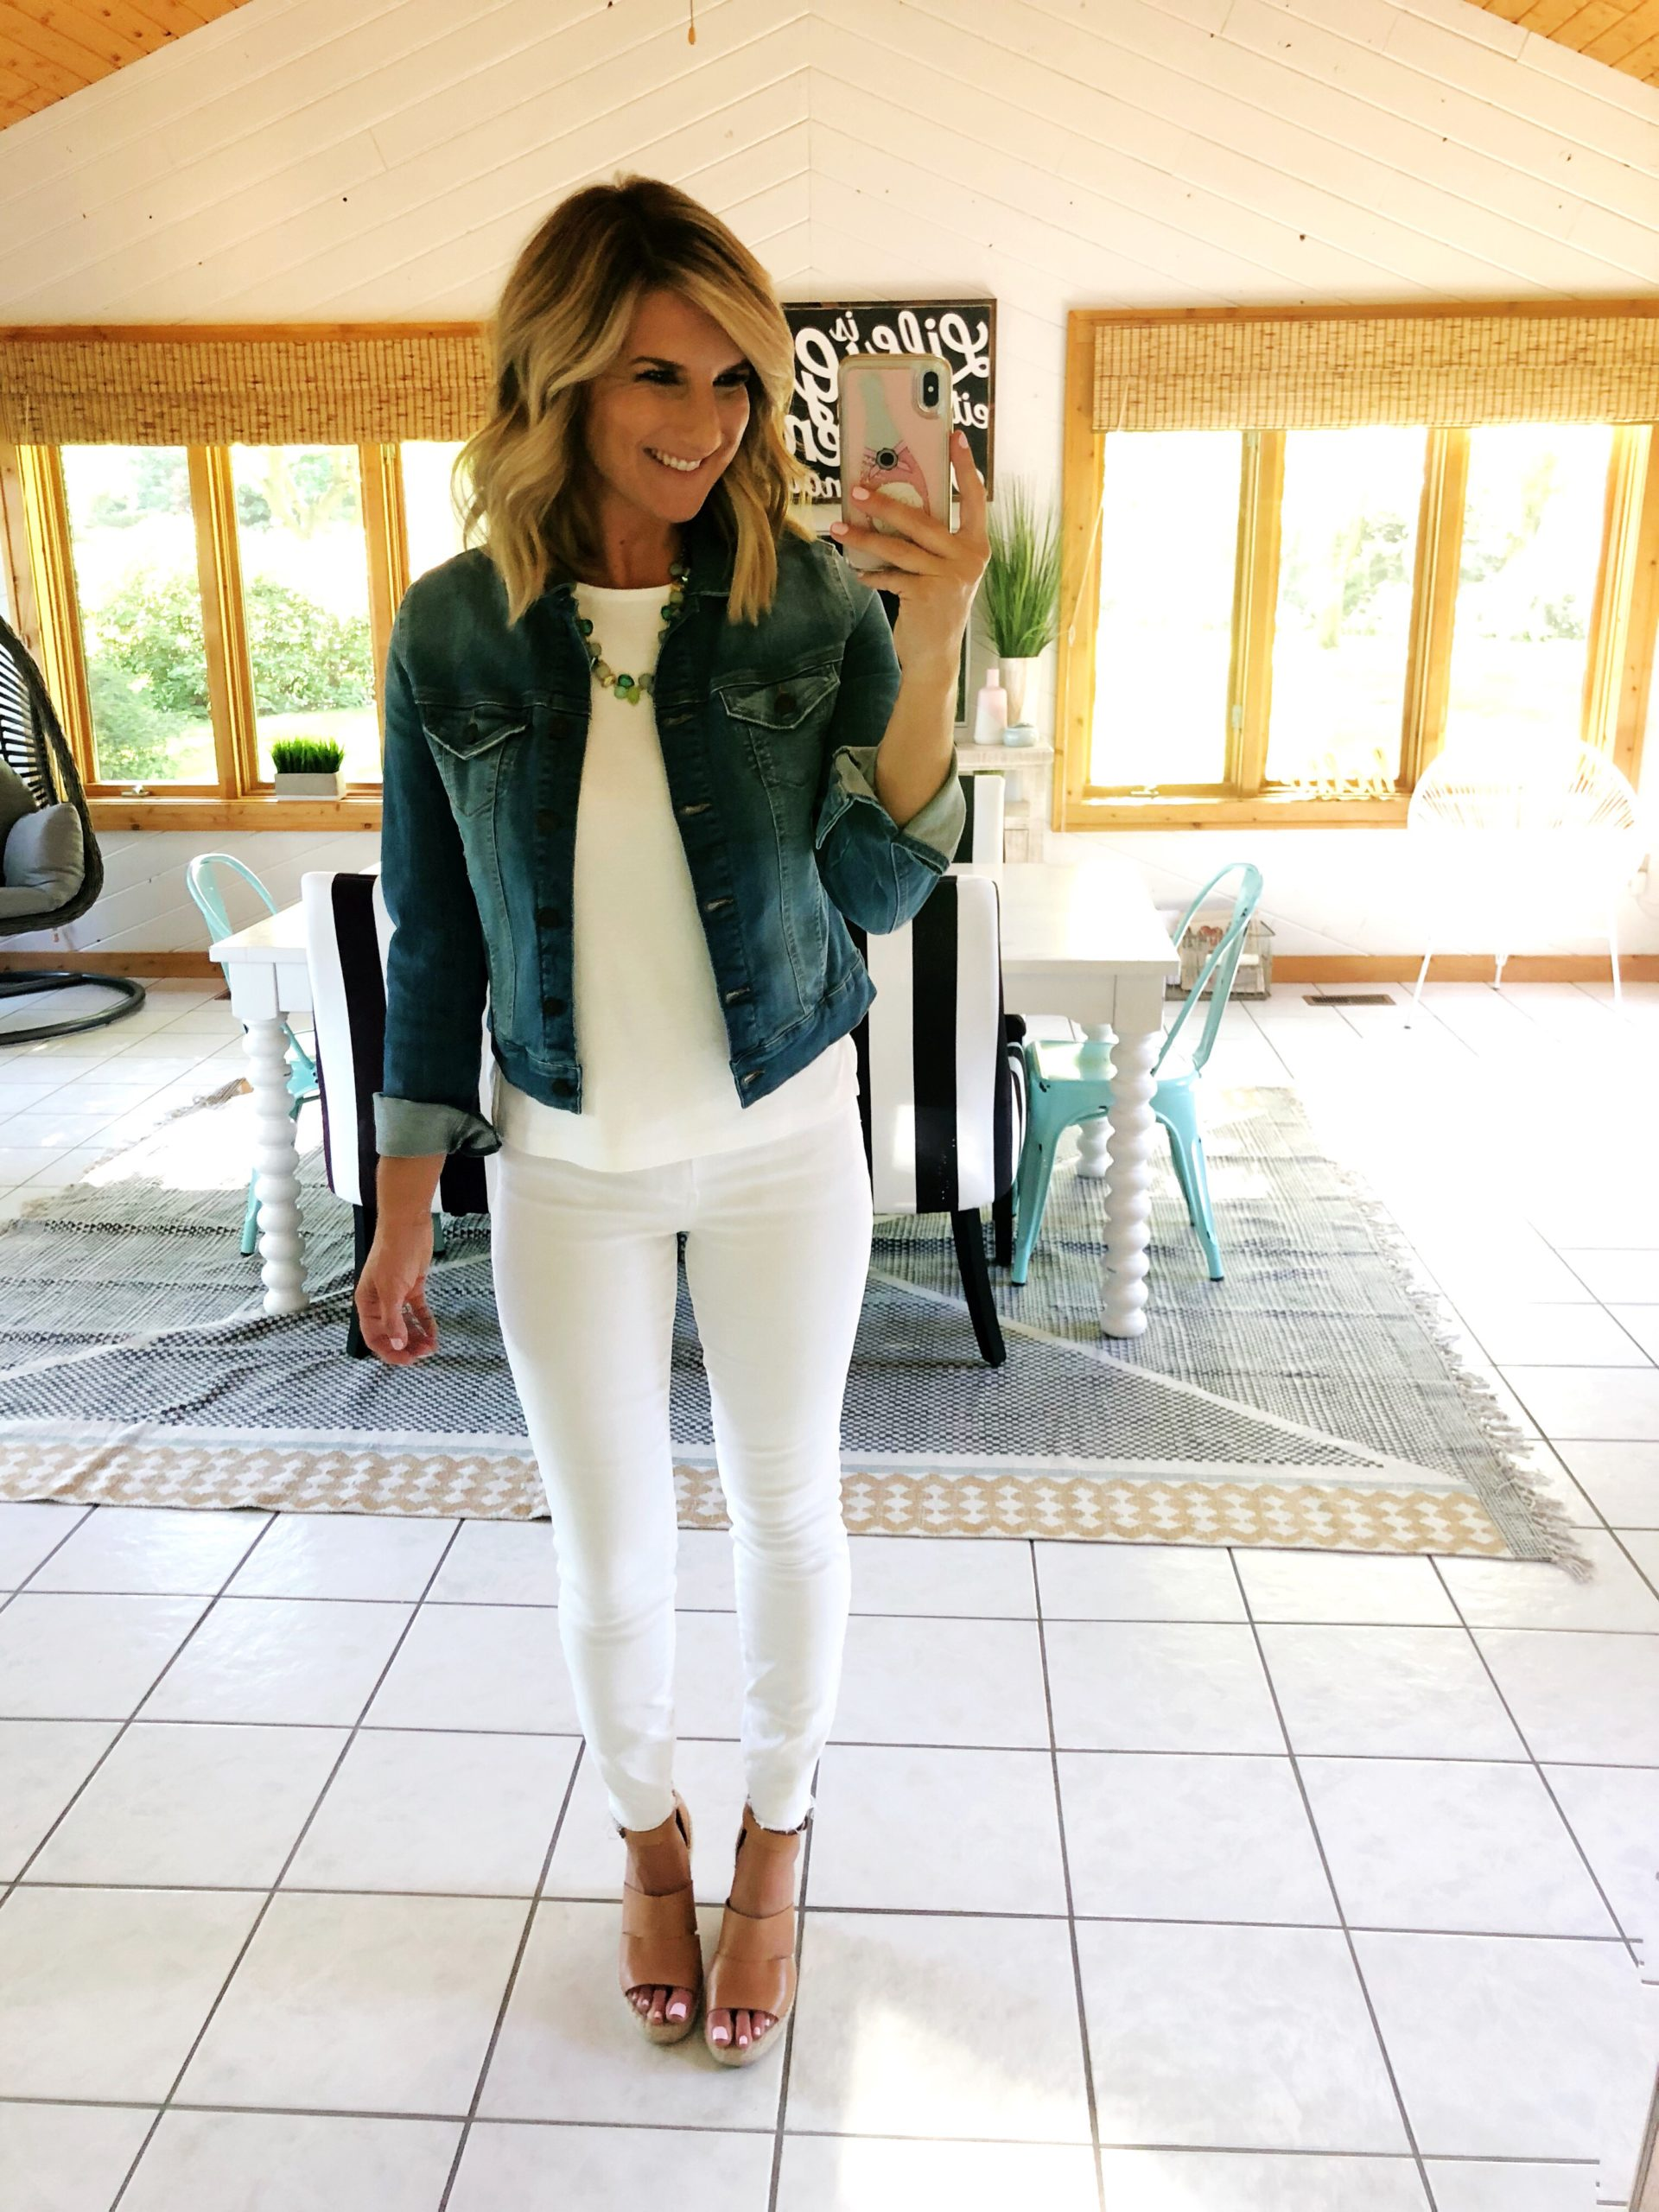 How to wear a white top and white jeans // What to wear with a denim jacket // non sheer white jeans // affordable outfit